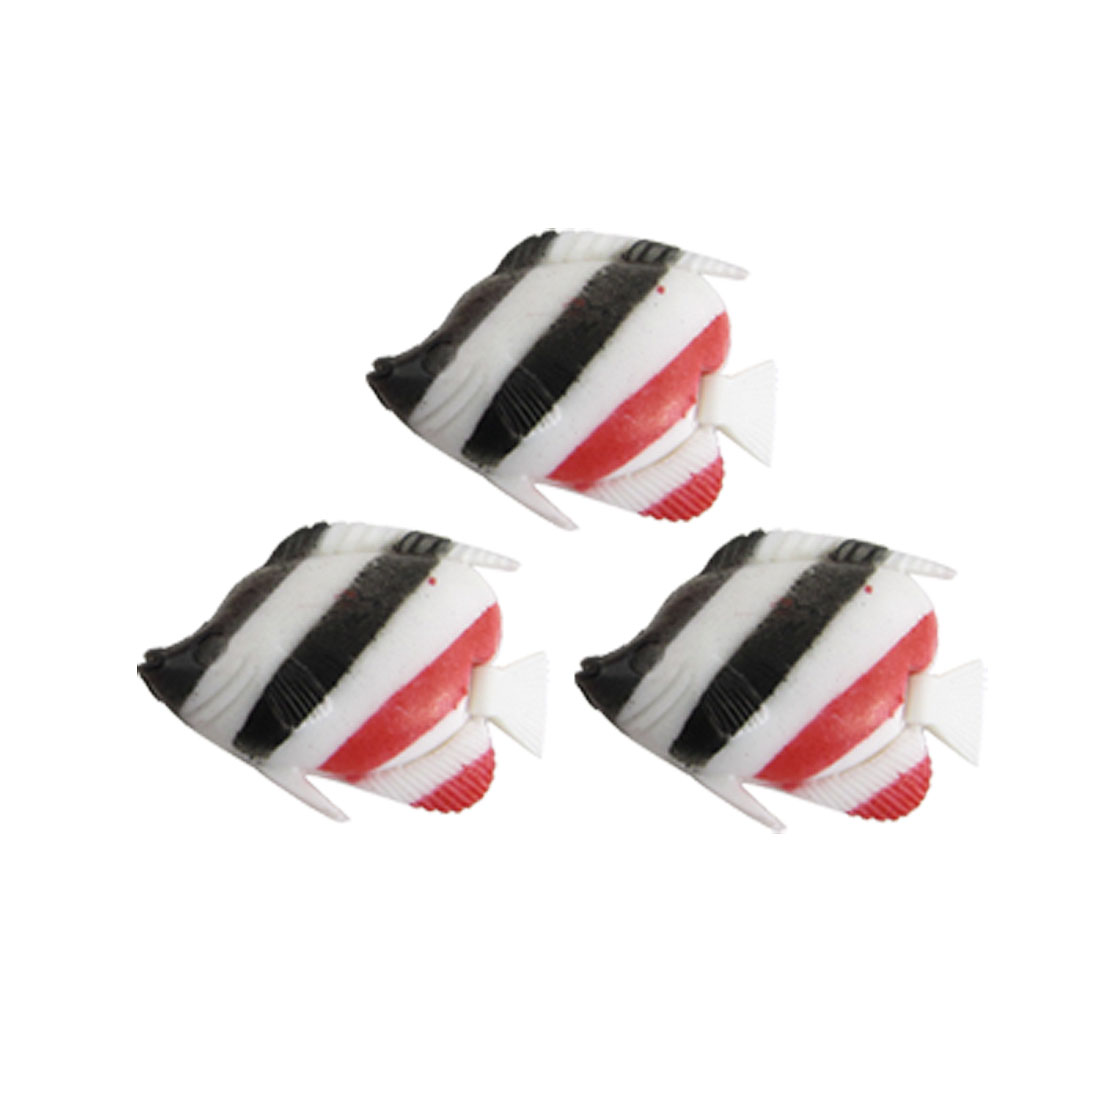 3 Pcs Striped Aquarium Wiggling Tail Plastic Fish Decoration